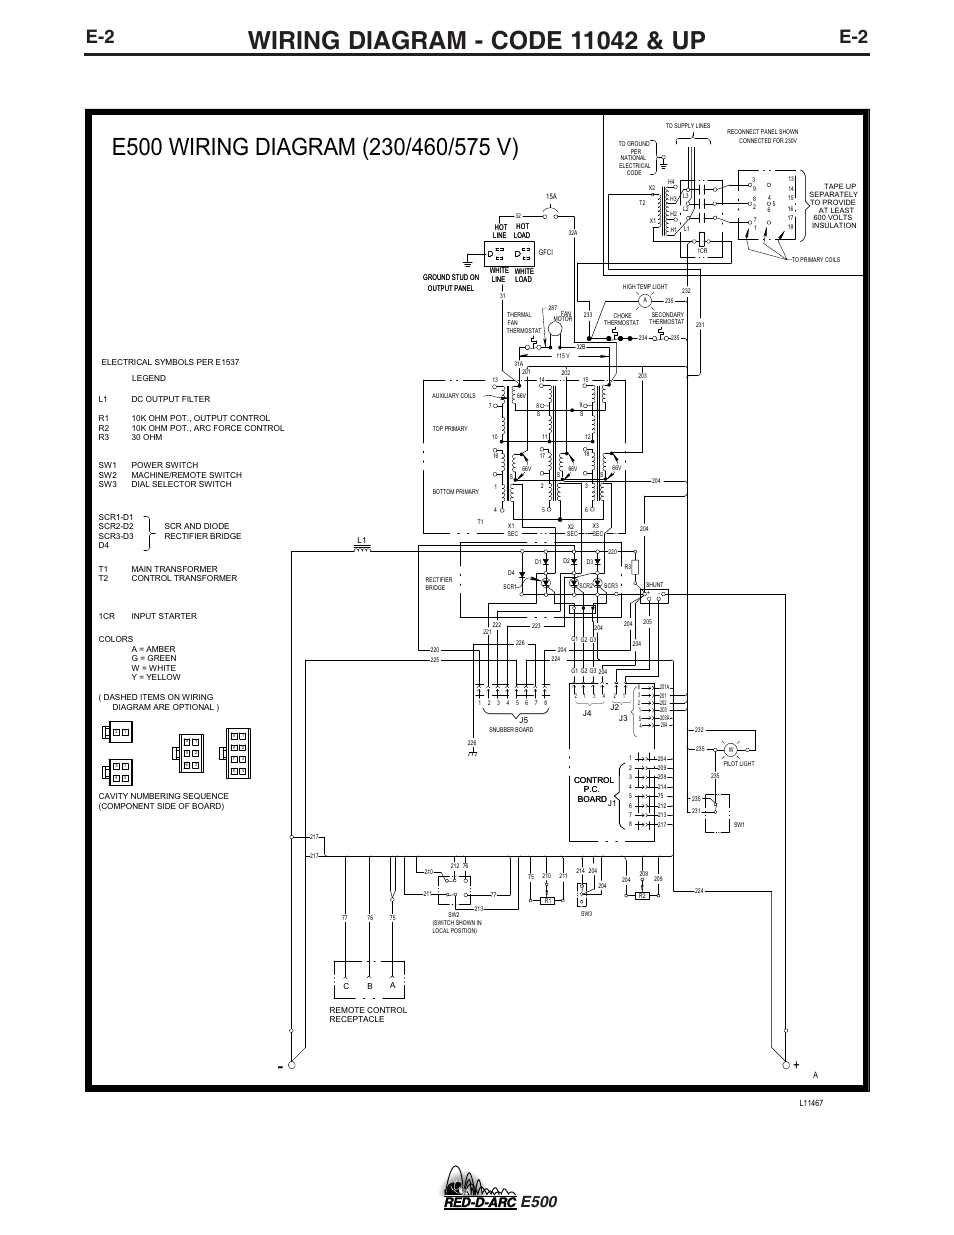 trol a temp wiring diagram trol a temp mm2 wiring diagram